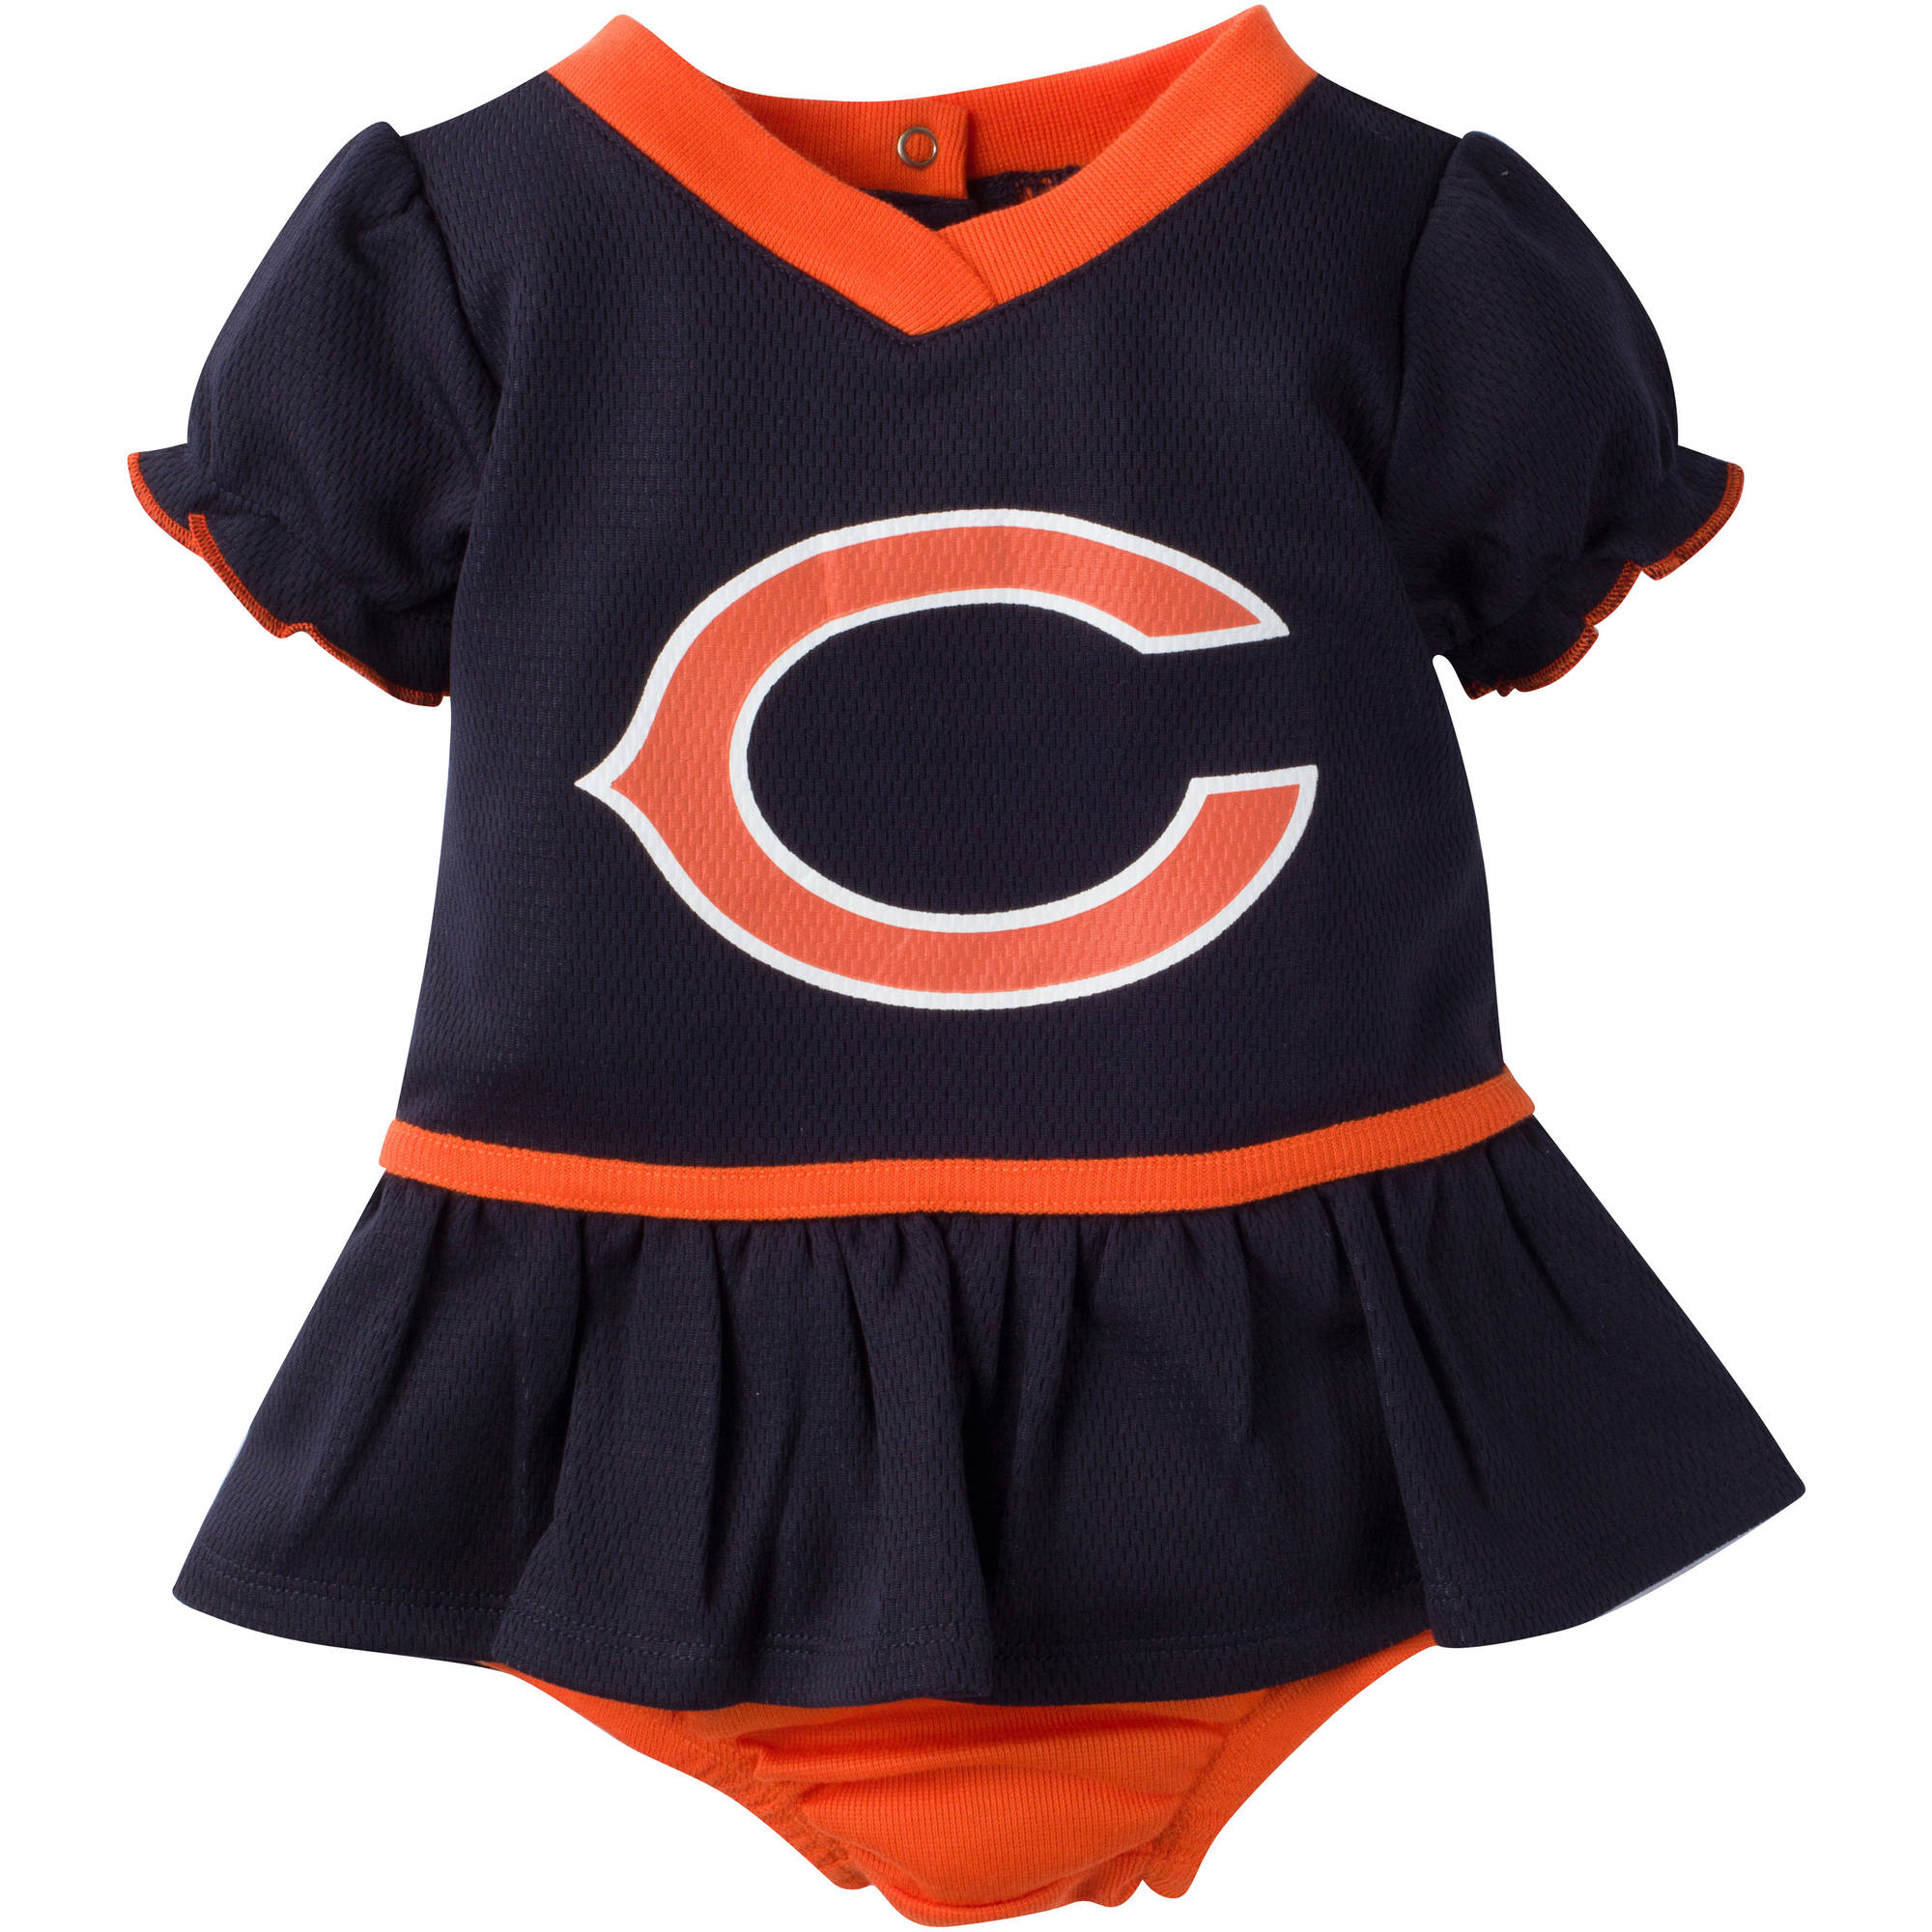 NFL Chicago Bears Baby Girls Mesh Dazzle Dress and Panty Set, 2-Piece